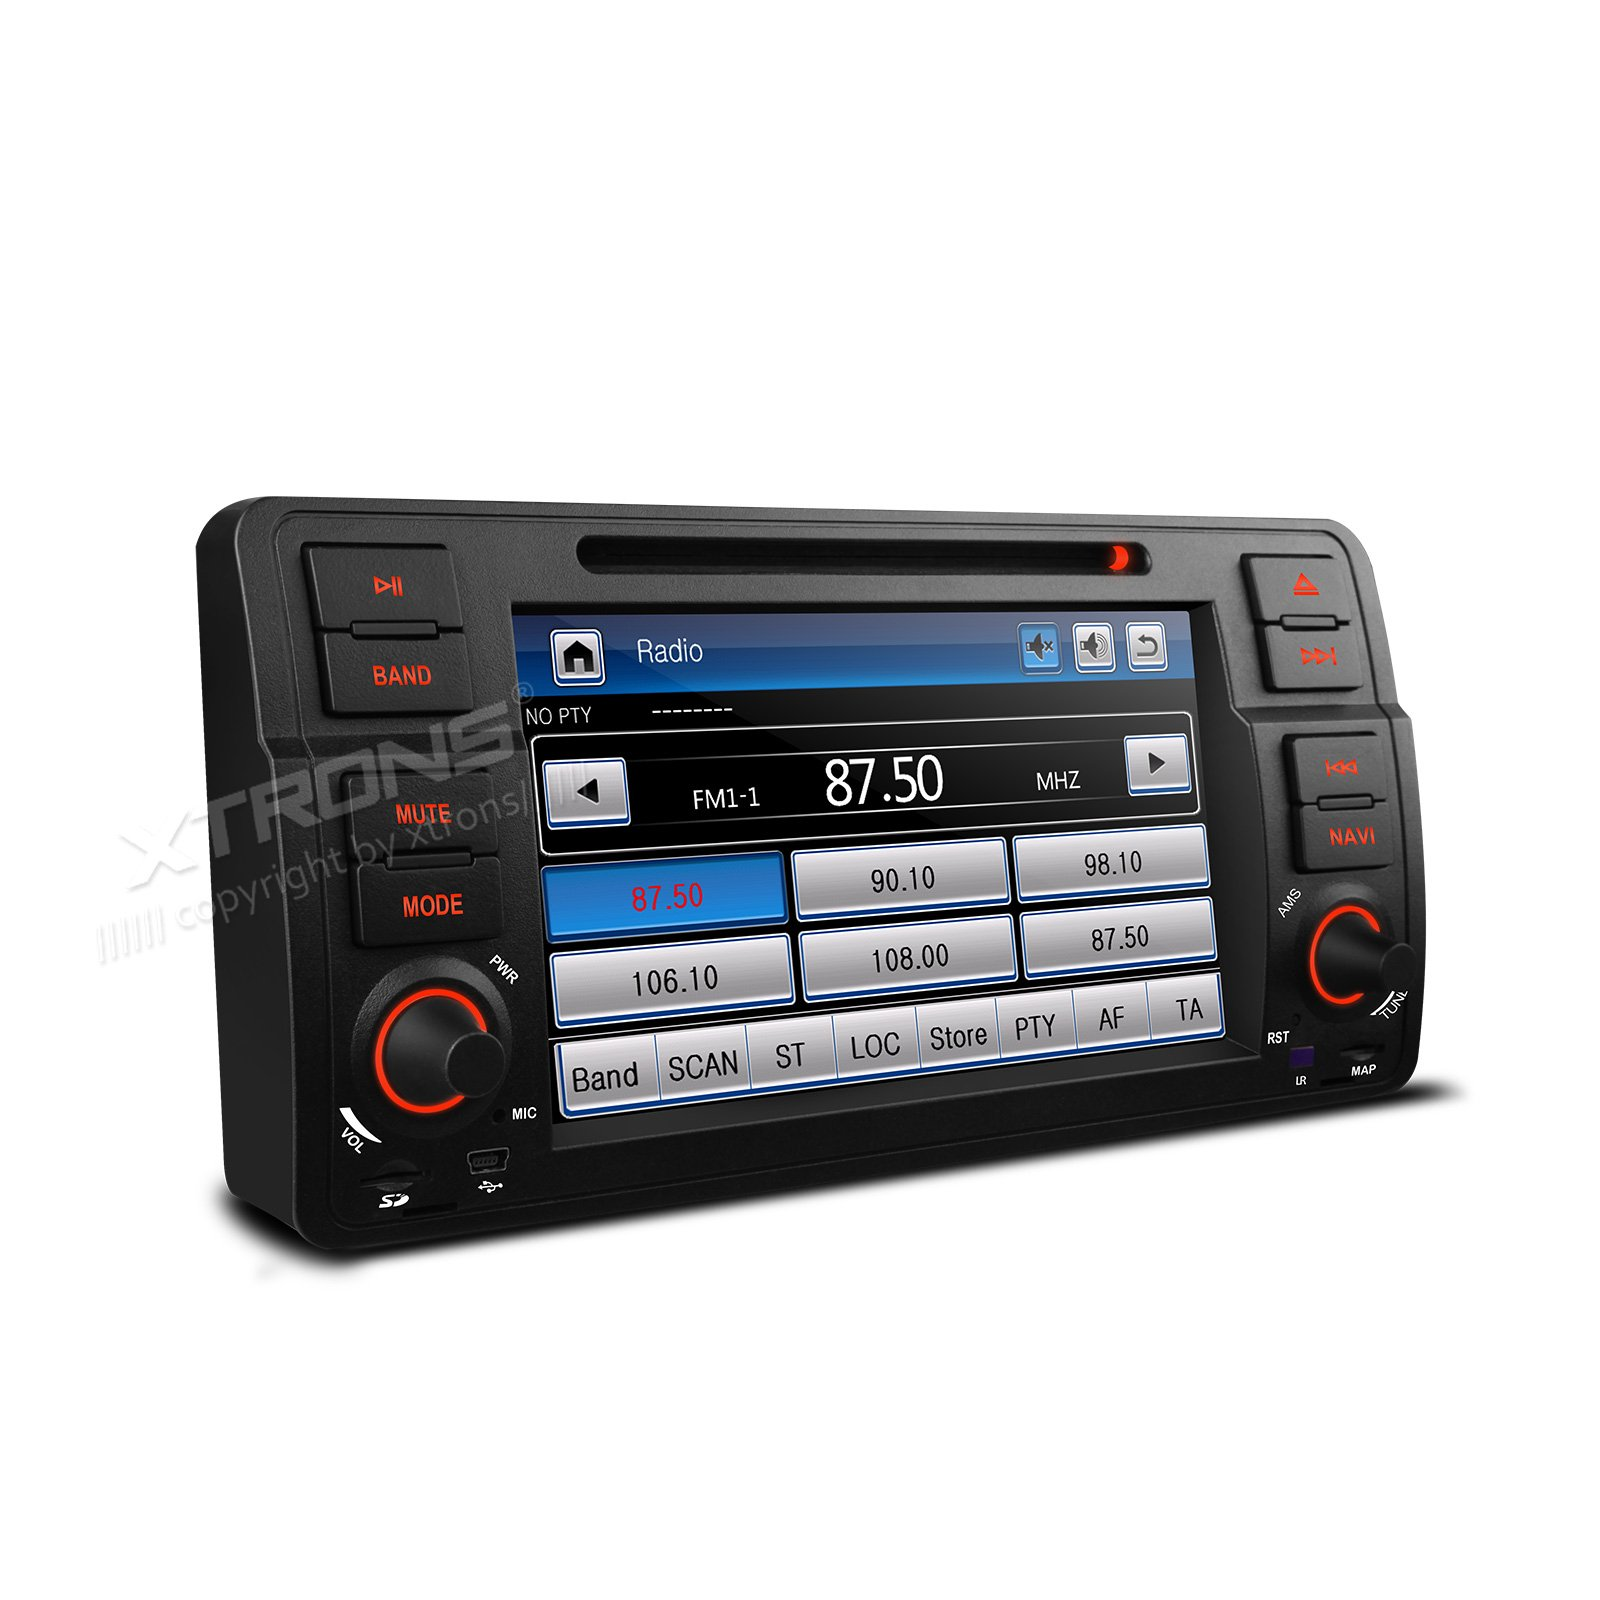 XTRONS 7 Inch HD Digital Touch Screen Car Stereo Radio in-Dash DVD Player with GPS Navigation CANbus Screen Mirroring Function for BMW E46 318 320 325 by XTRONS